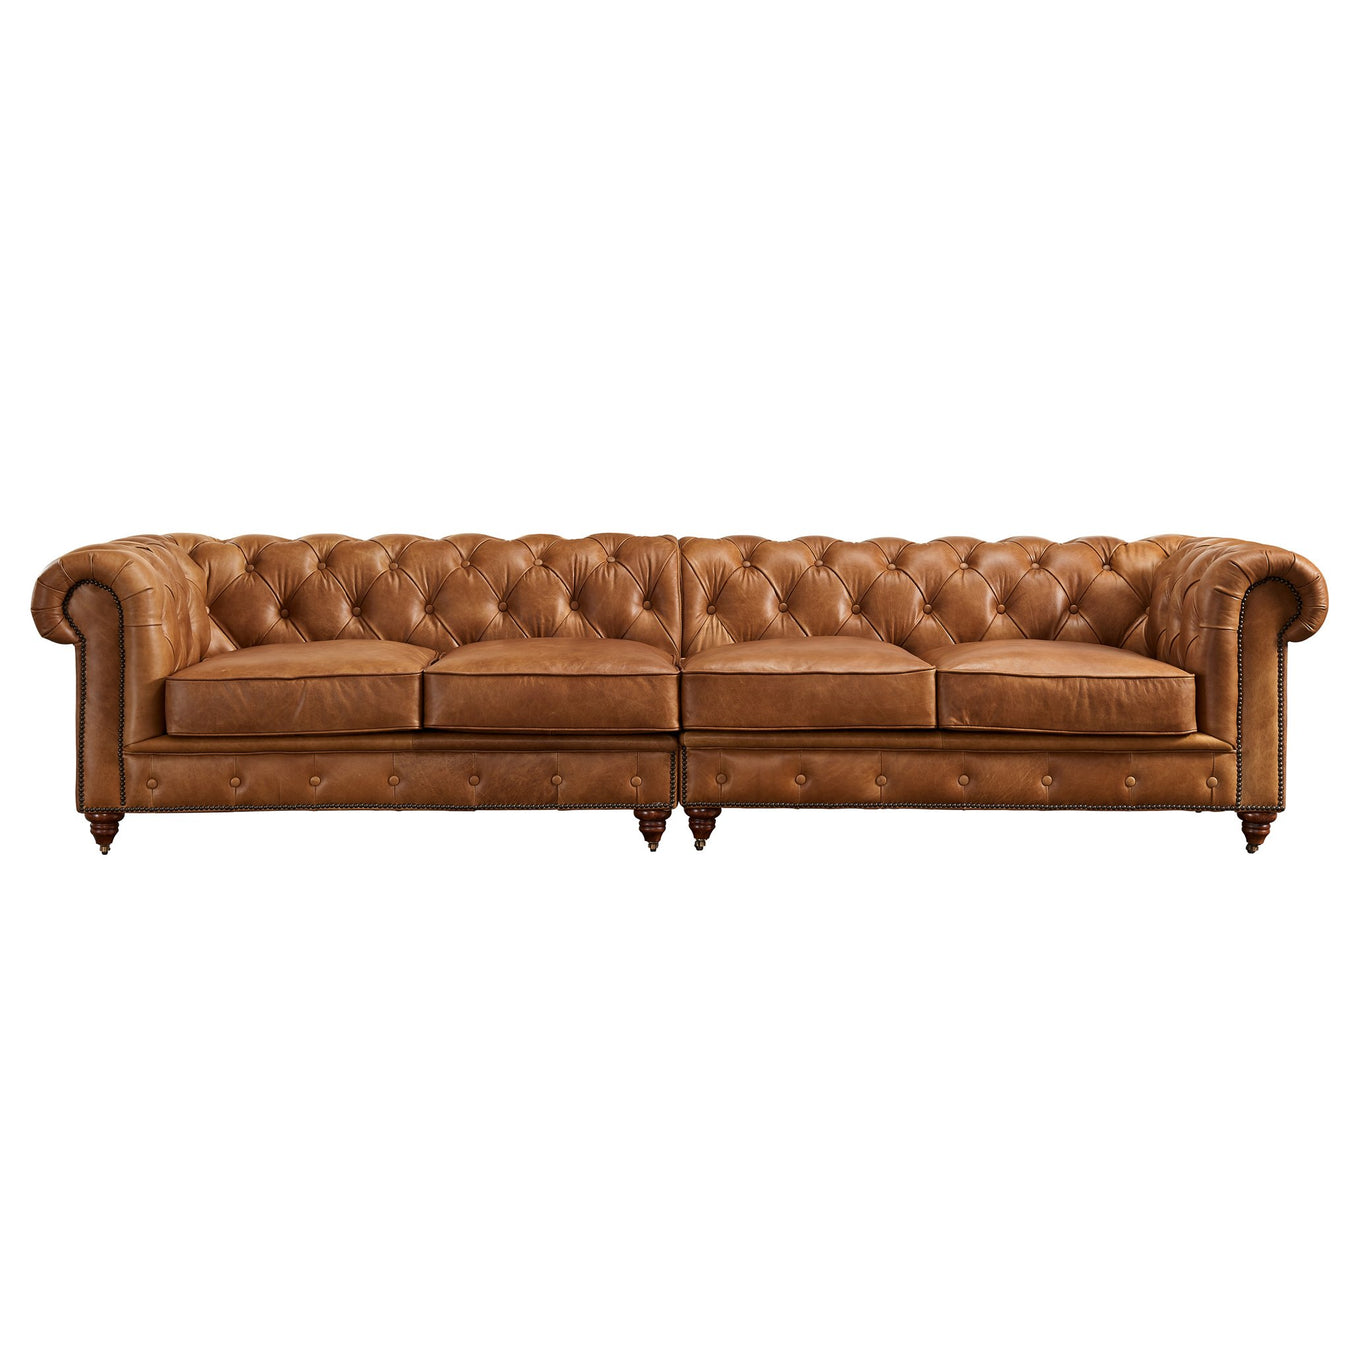 "118"" Century Chesterfield Sofas"